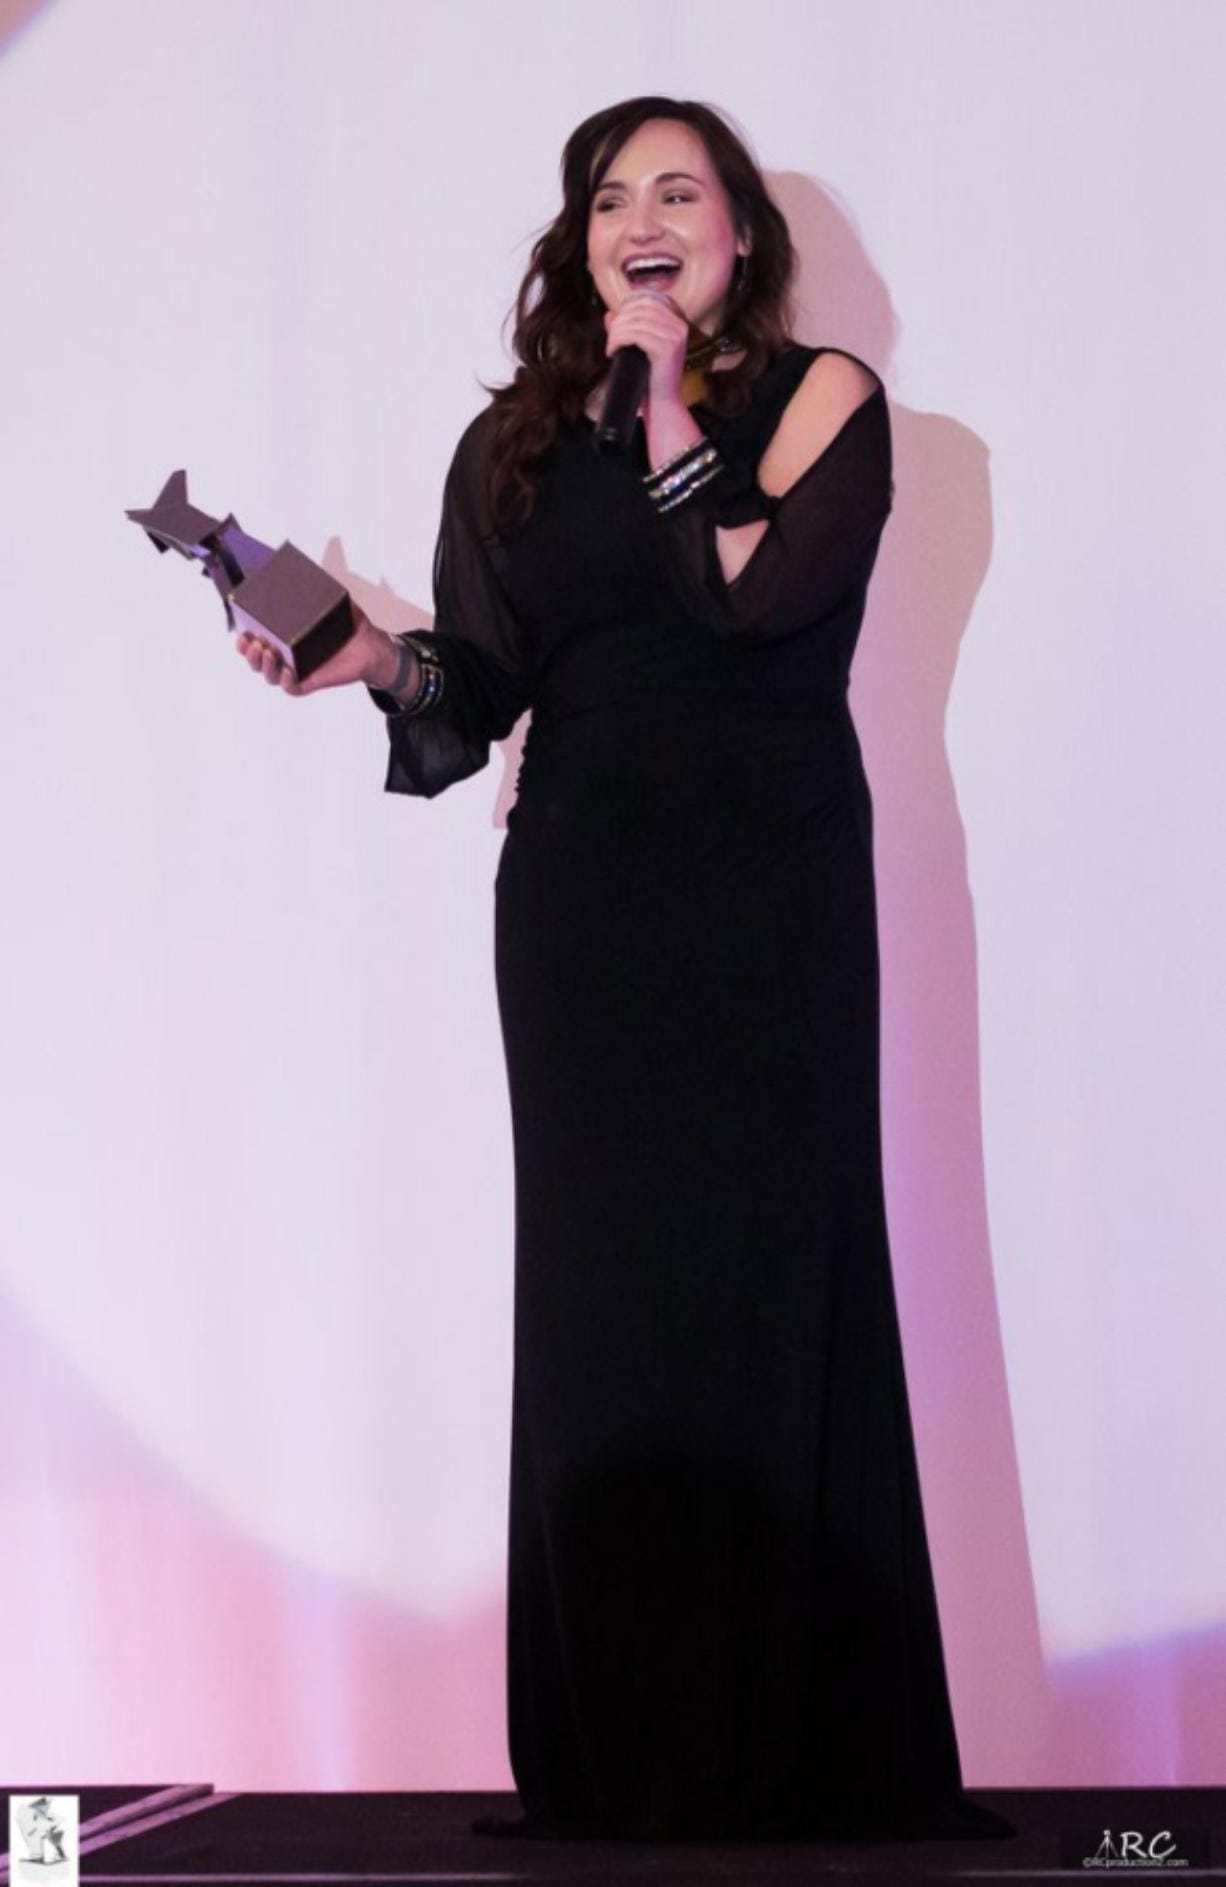 Mountain View High School graduate Angela Cruze received the Denise White Award at the 2019 Global Beauty Awards for her experience in the foster care system and dedication to helping youth.